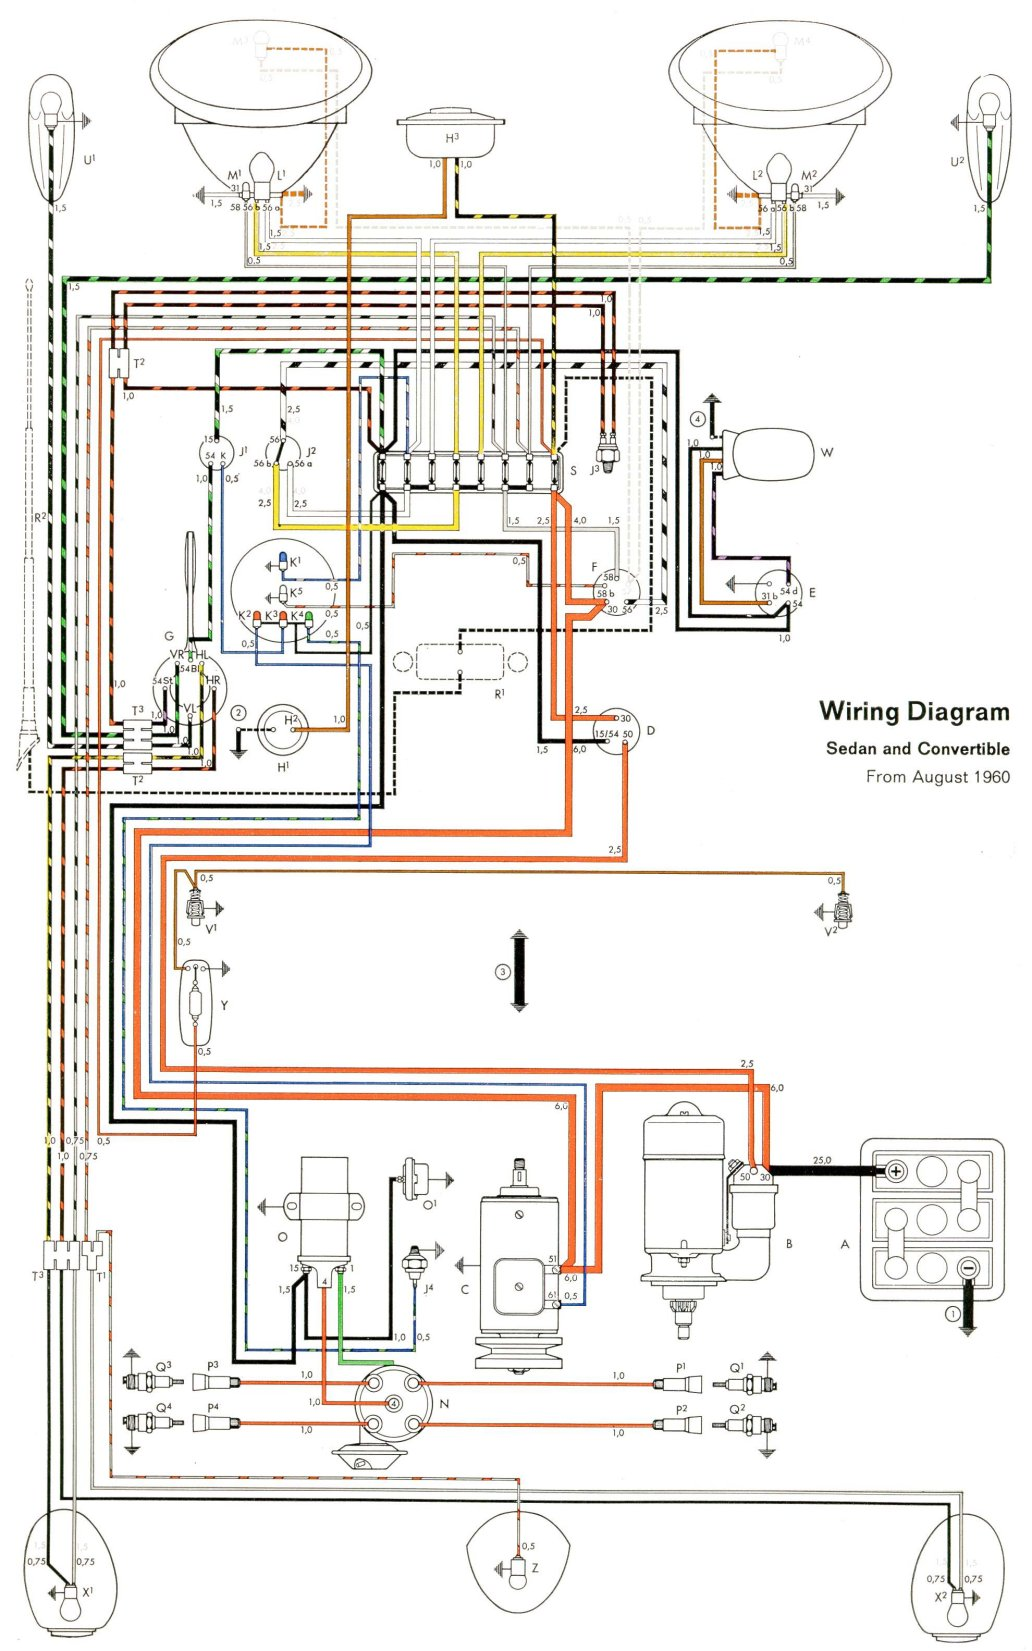 bug_61 1969 beetle wiring diagram 1972 beetle wiring diagram \u2022 free 1969 vw squareback wiring diagram at webbmarketing.co